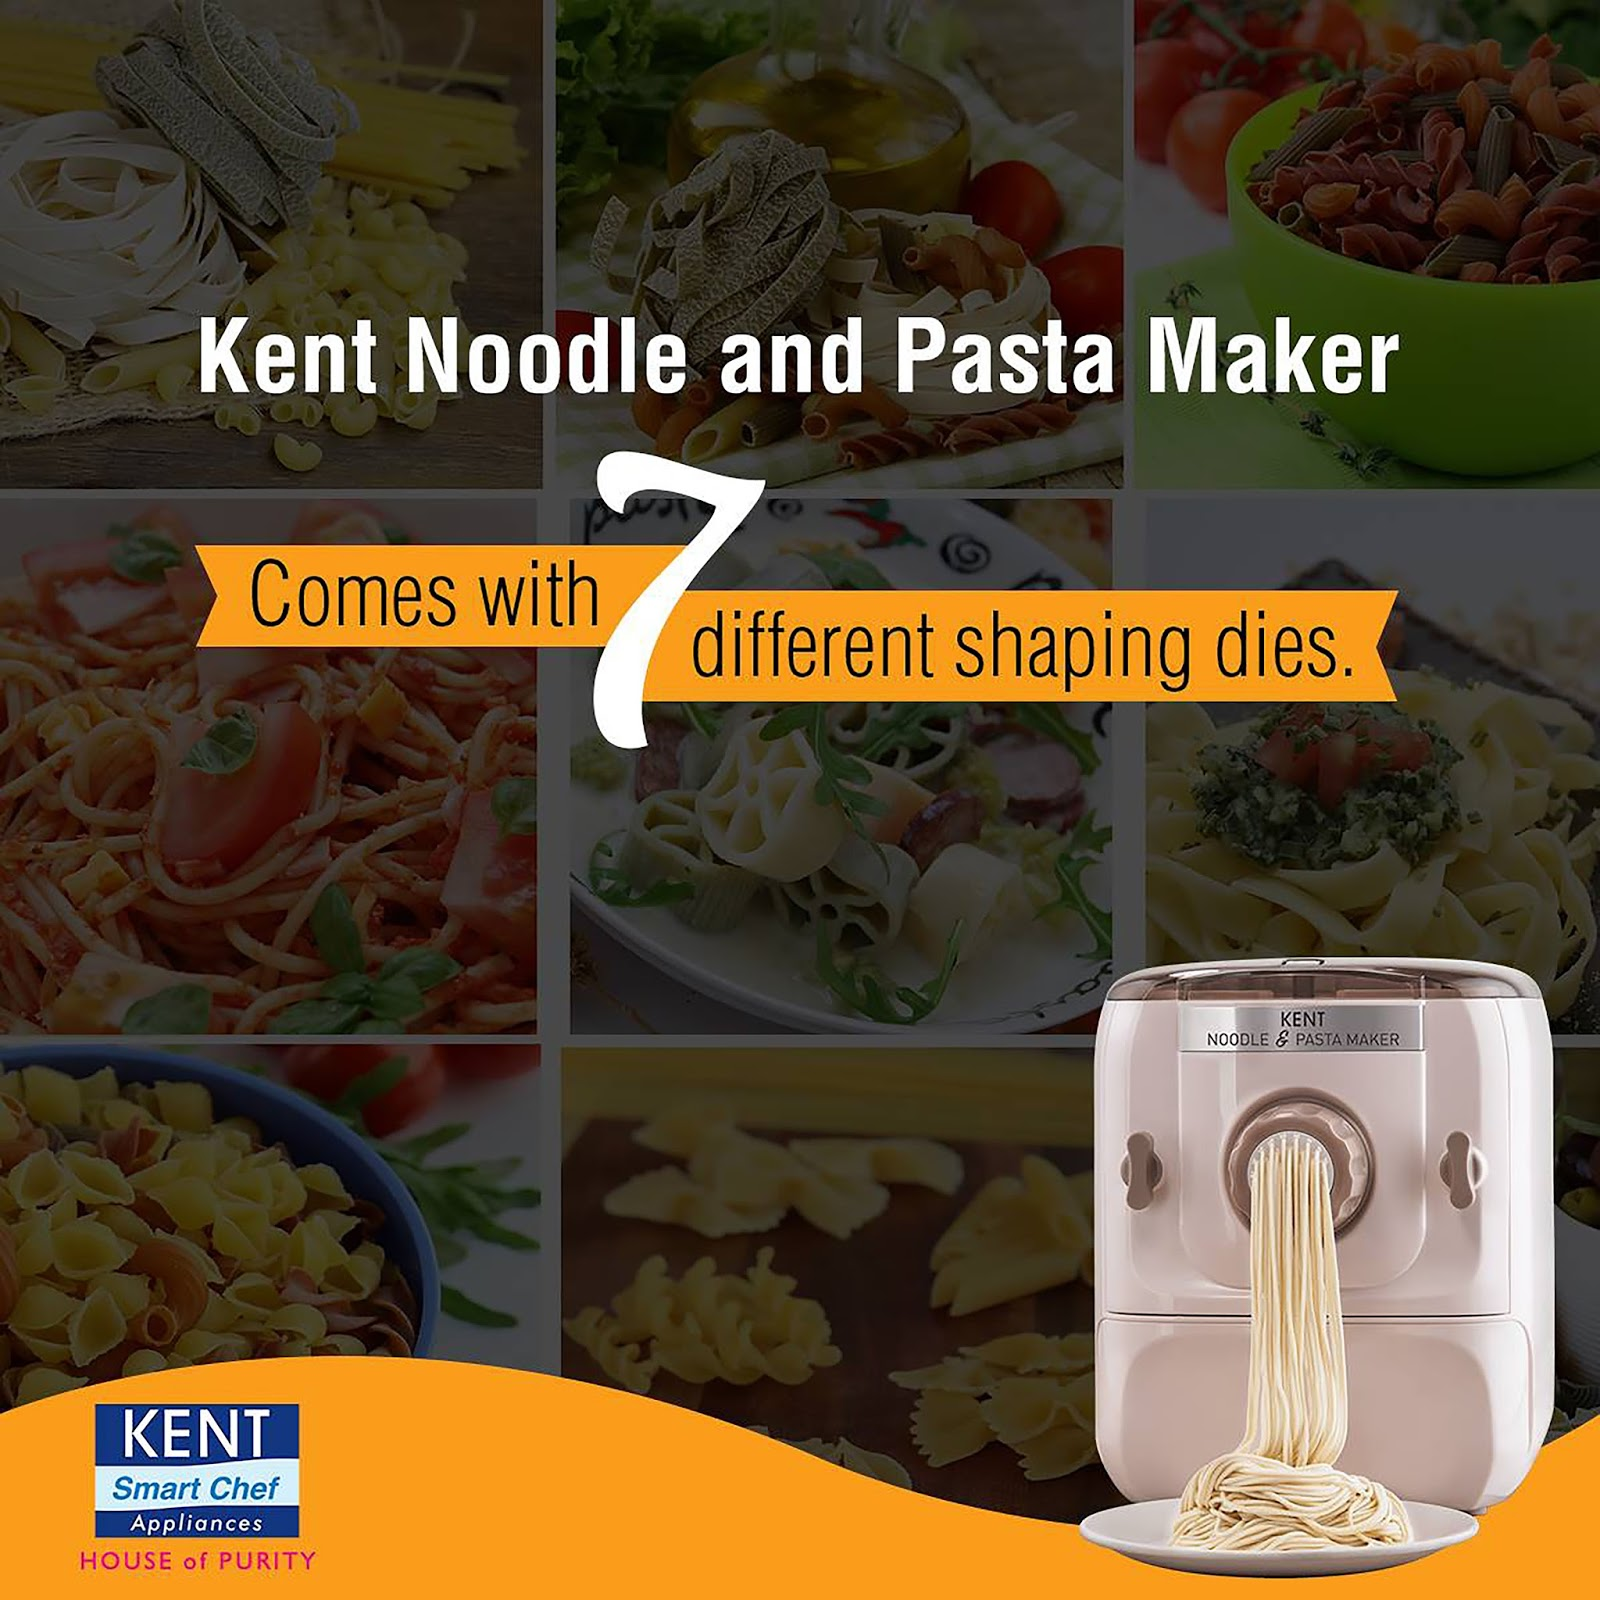 Kent Ro Debuts In Small Kitchen Appliance Segment With